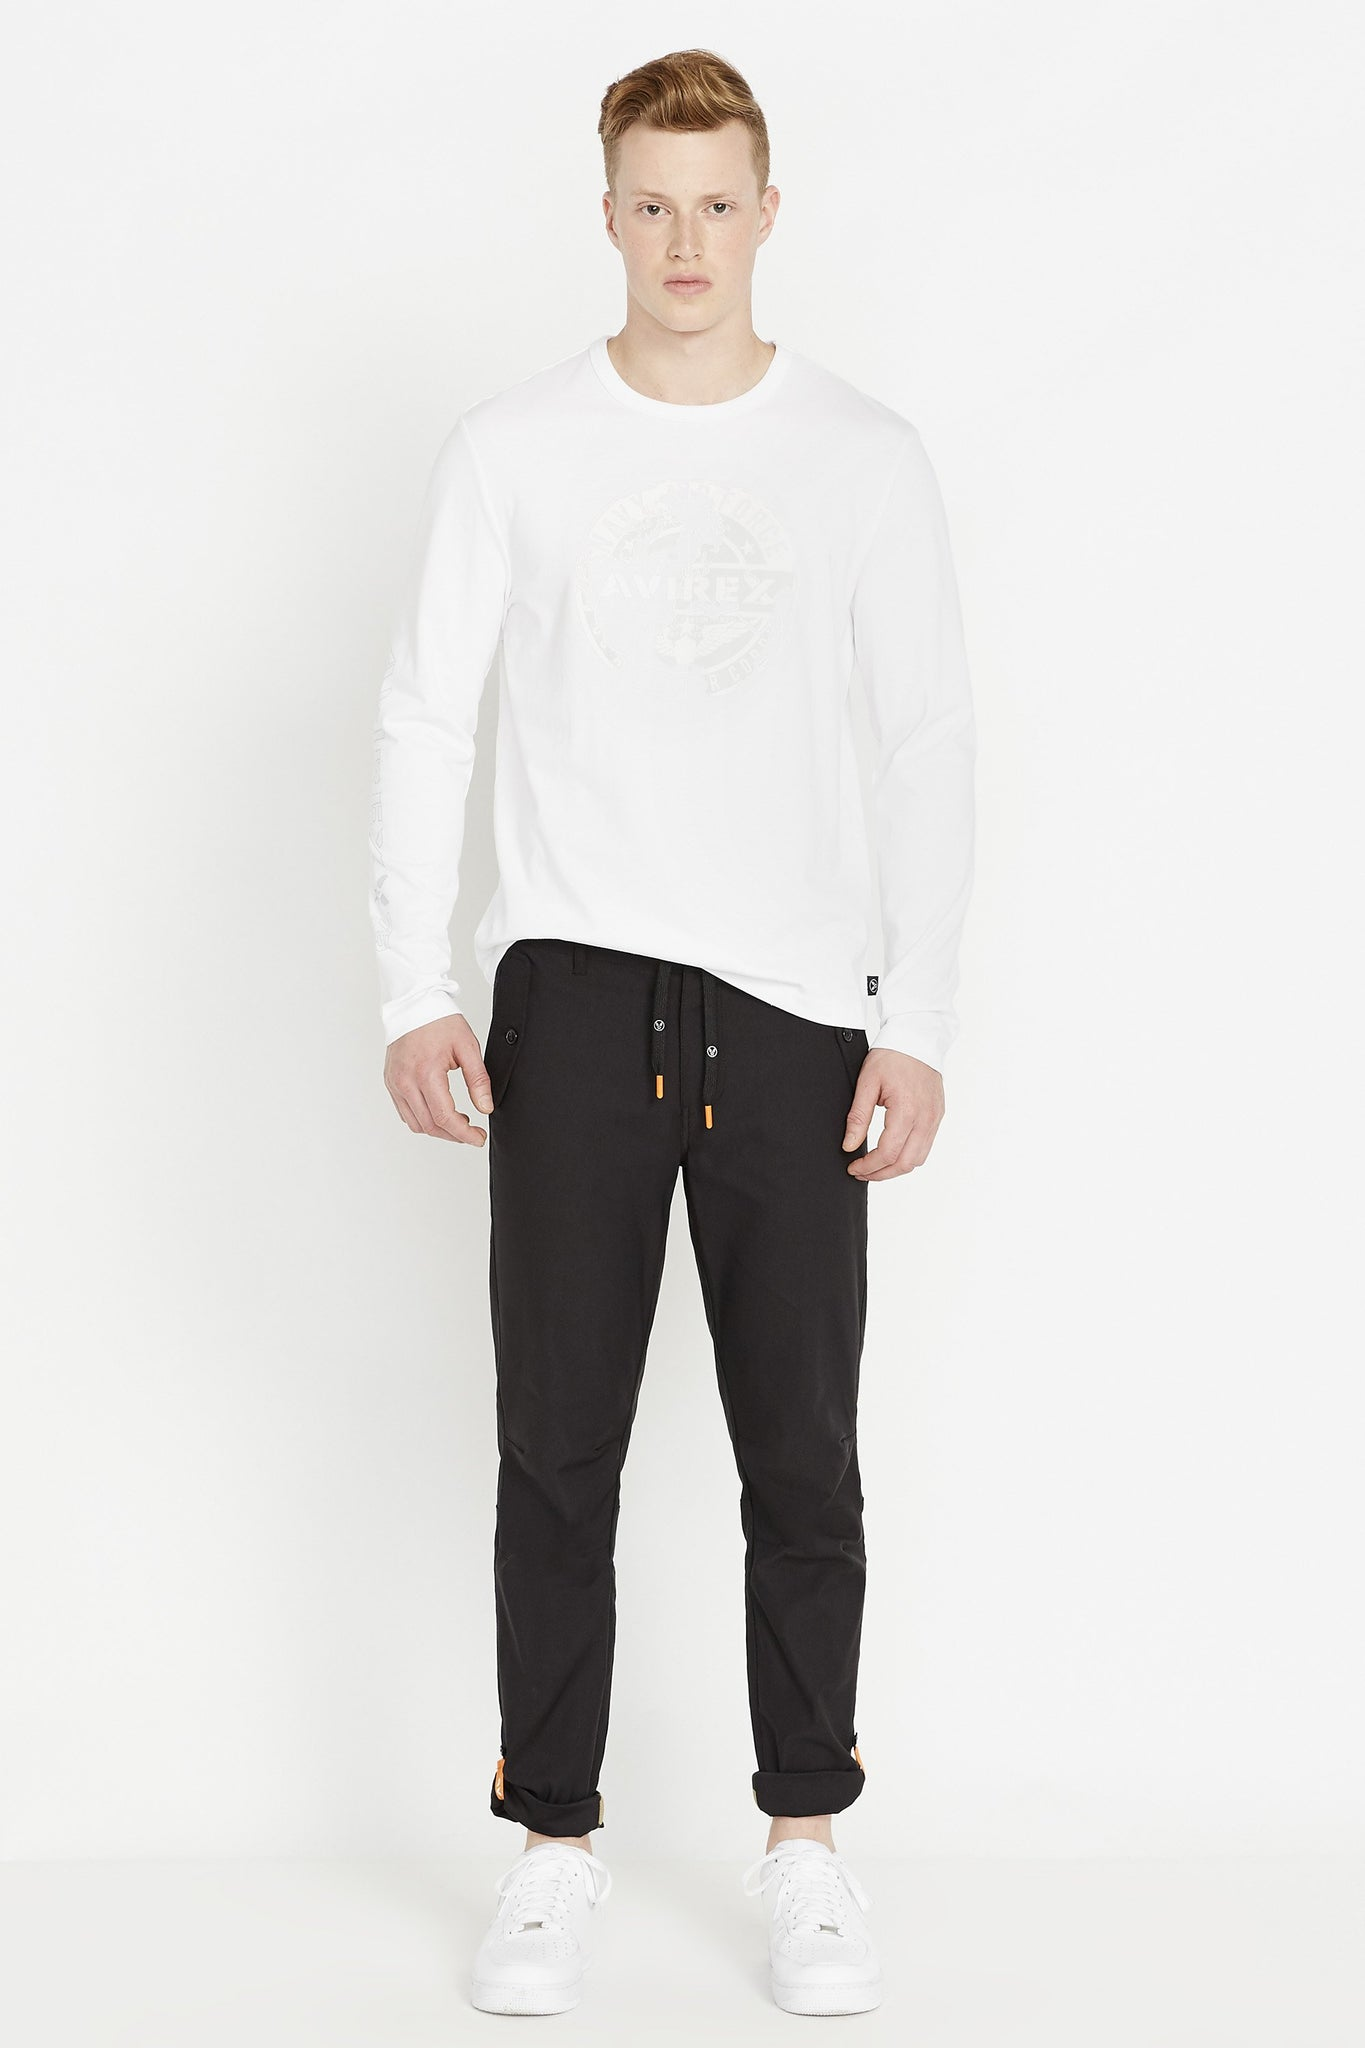 Full view of men wearing a white long sleeve crew neck T-shirt with white round logo graphic print on chest and black pants